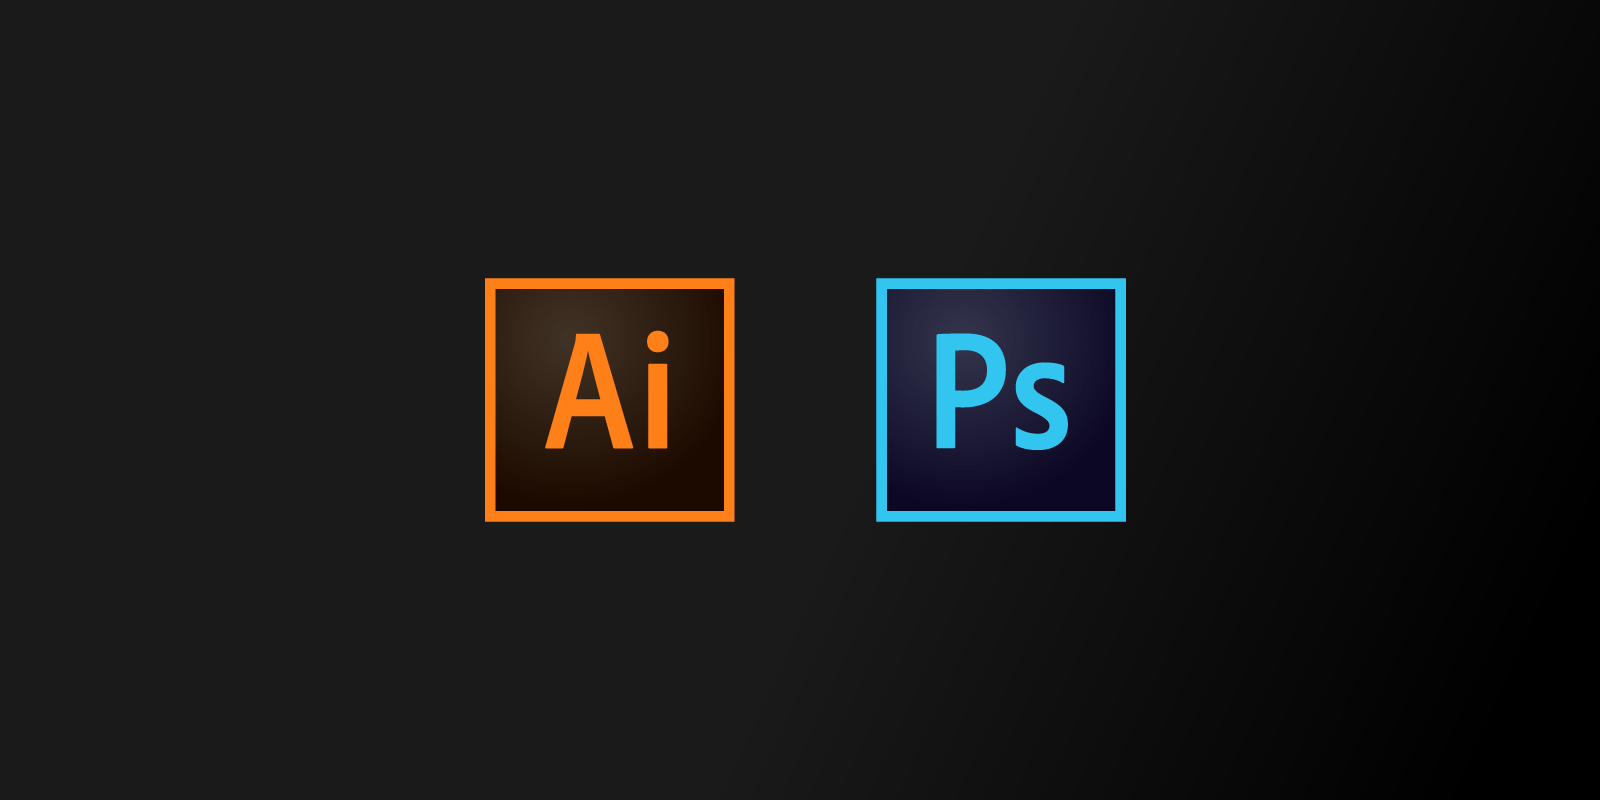 Certificate for Photoshop & Illustrator